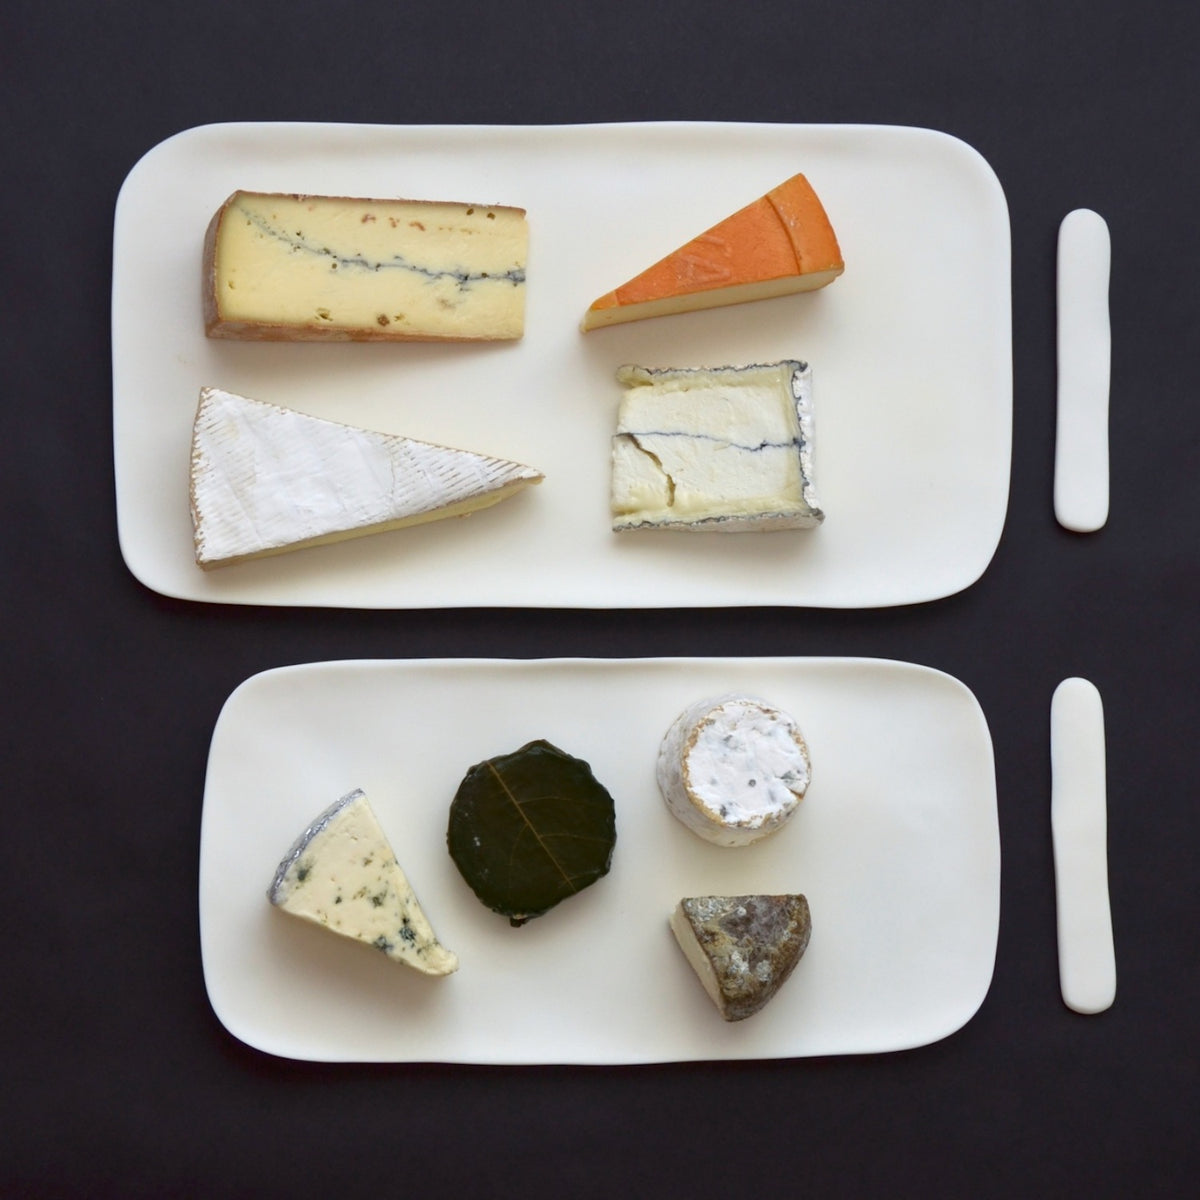 Small White Serving Board with Cheese Spreader